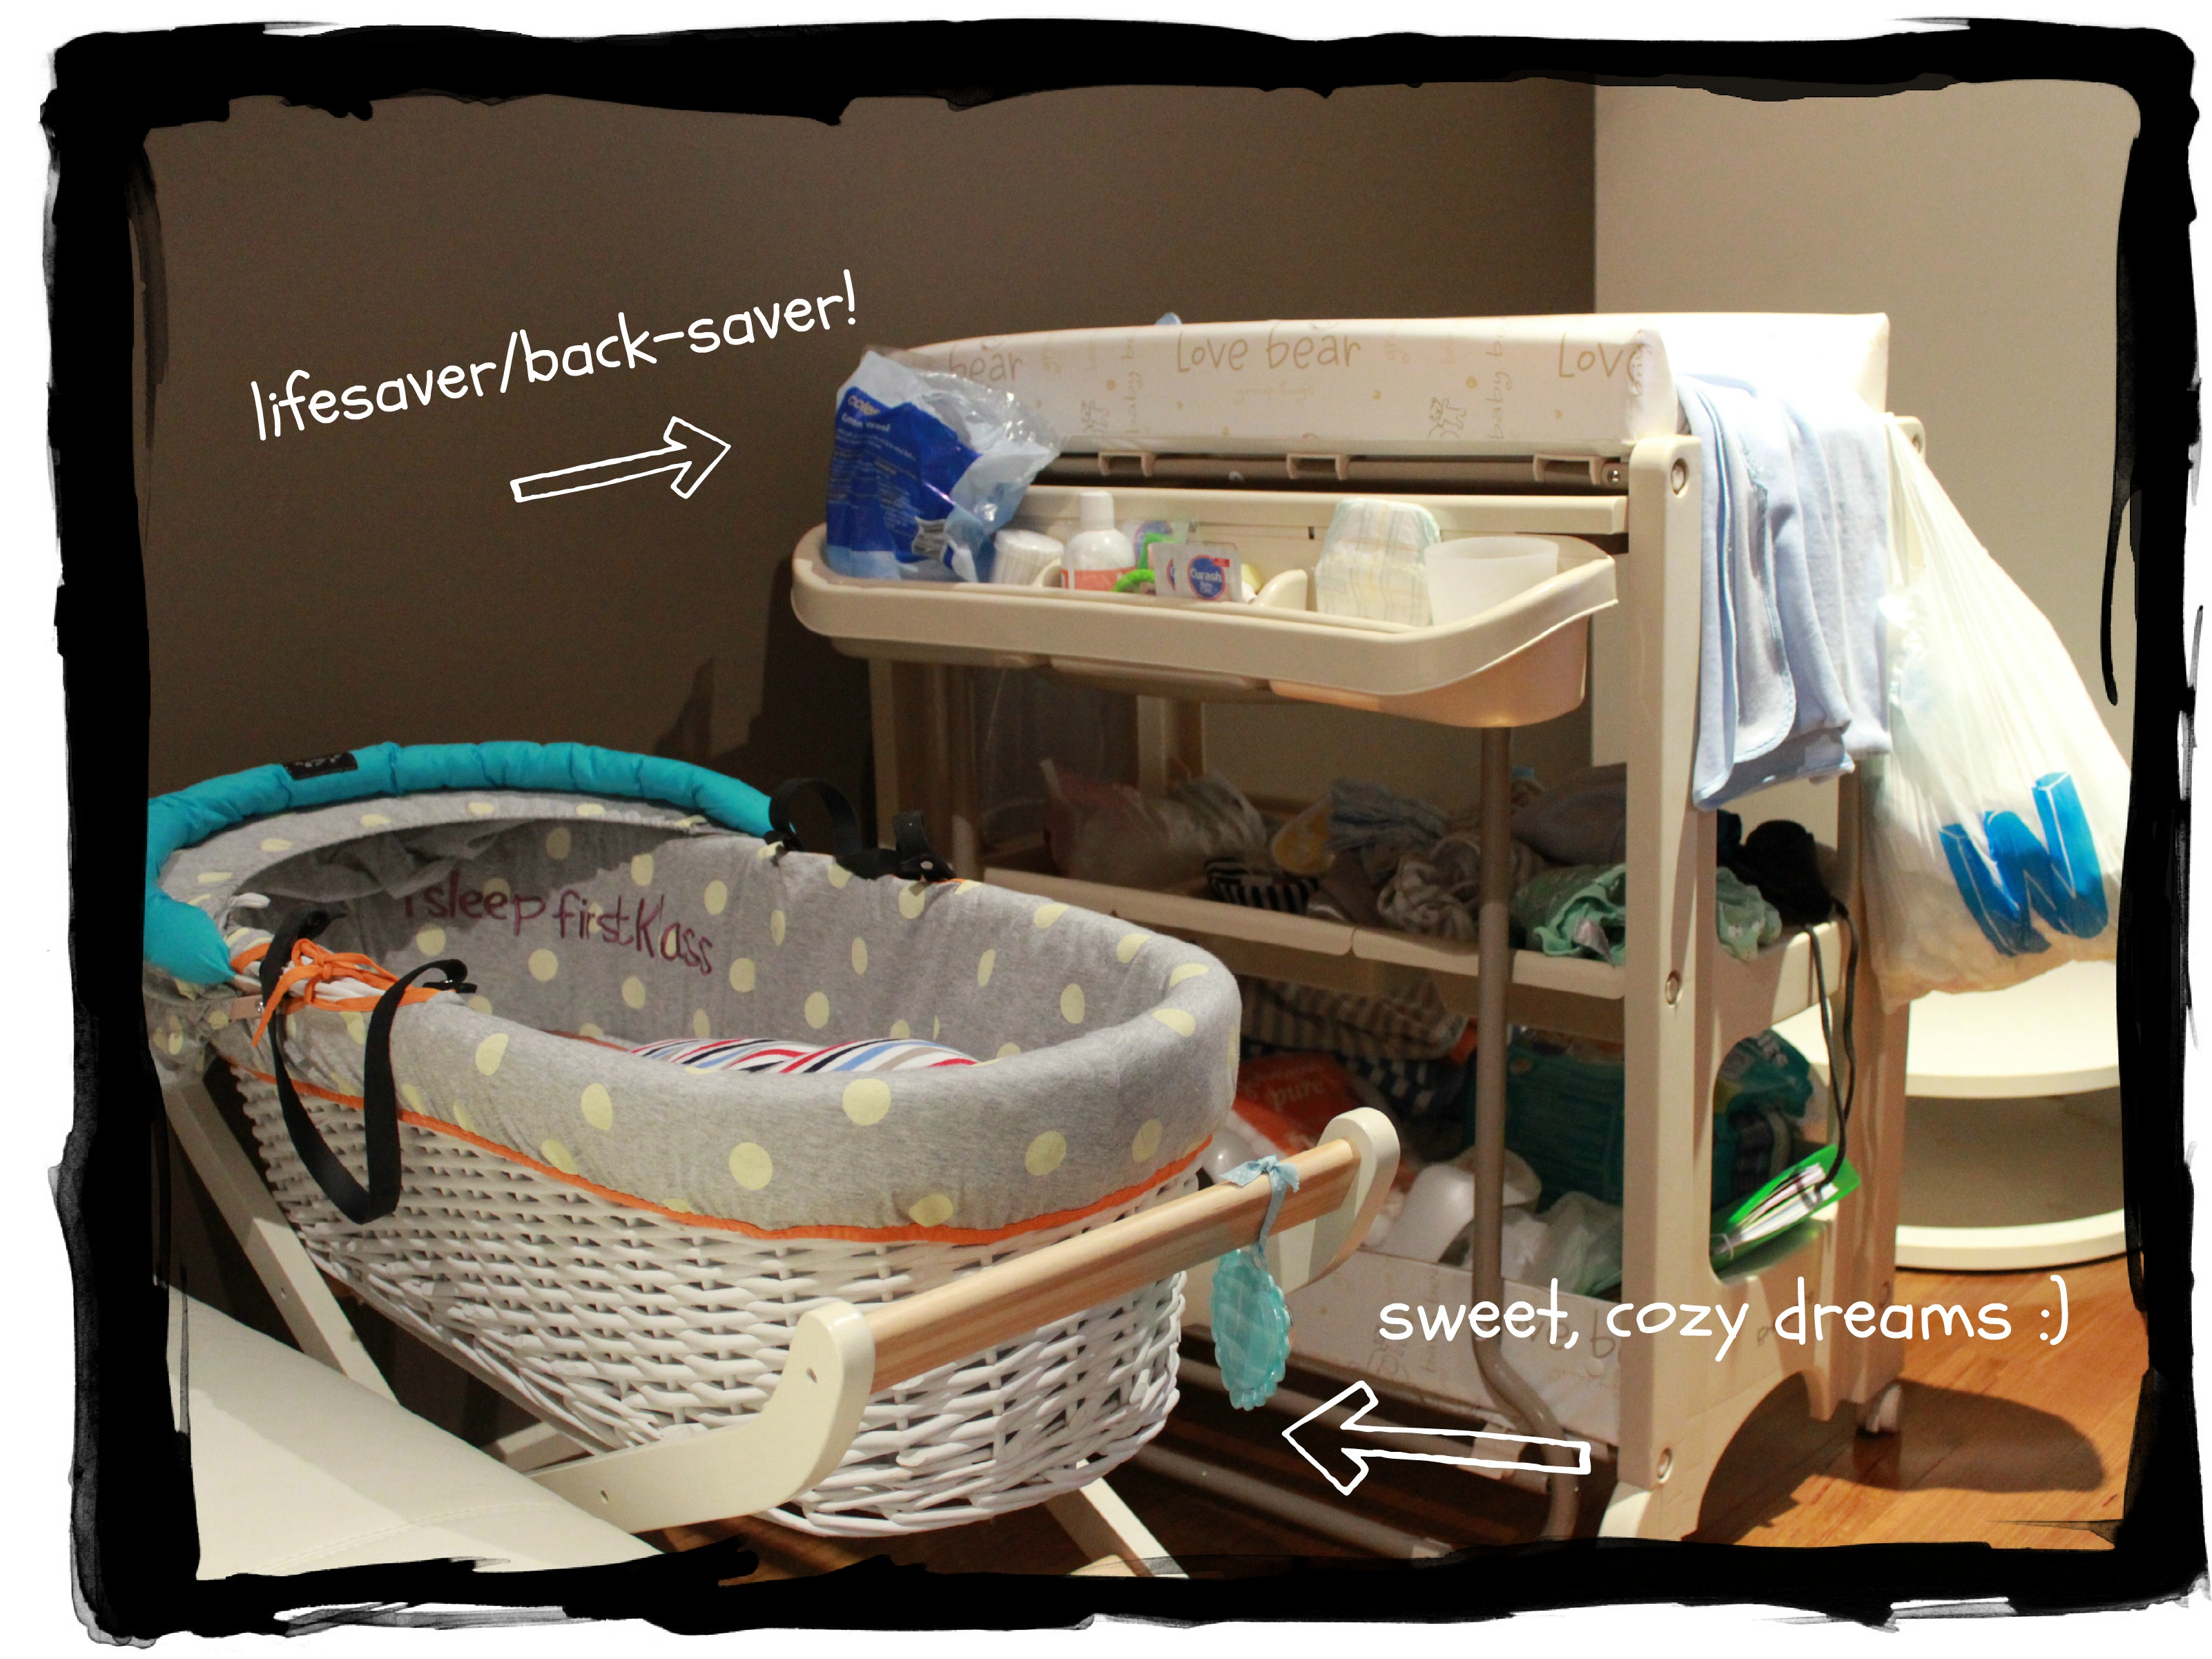 ... Baby Time 2) Baby K Moses Basket From Mothercare 5) Canon 600D DSLR 7)  What To Expect When Youu0027re Expecting U2013 Borrowed From A Friend, Save Our  Sleep By ...